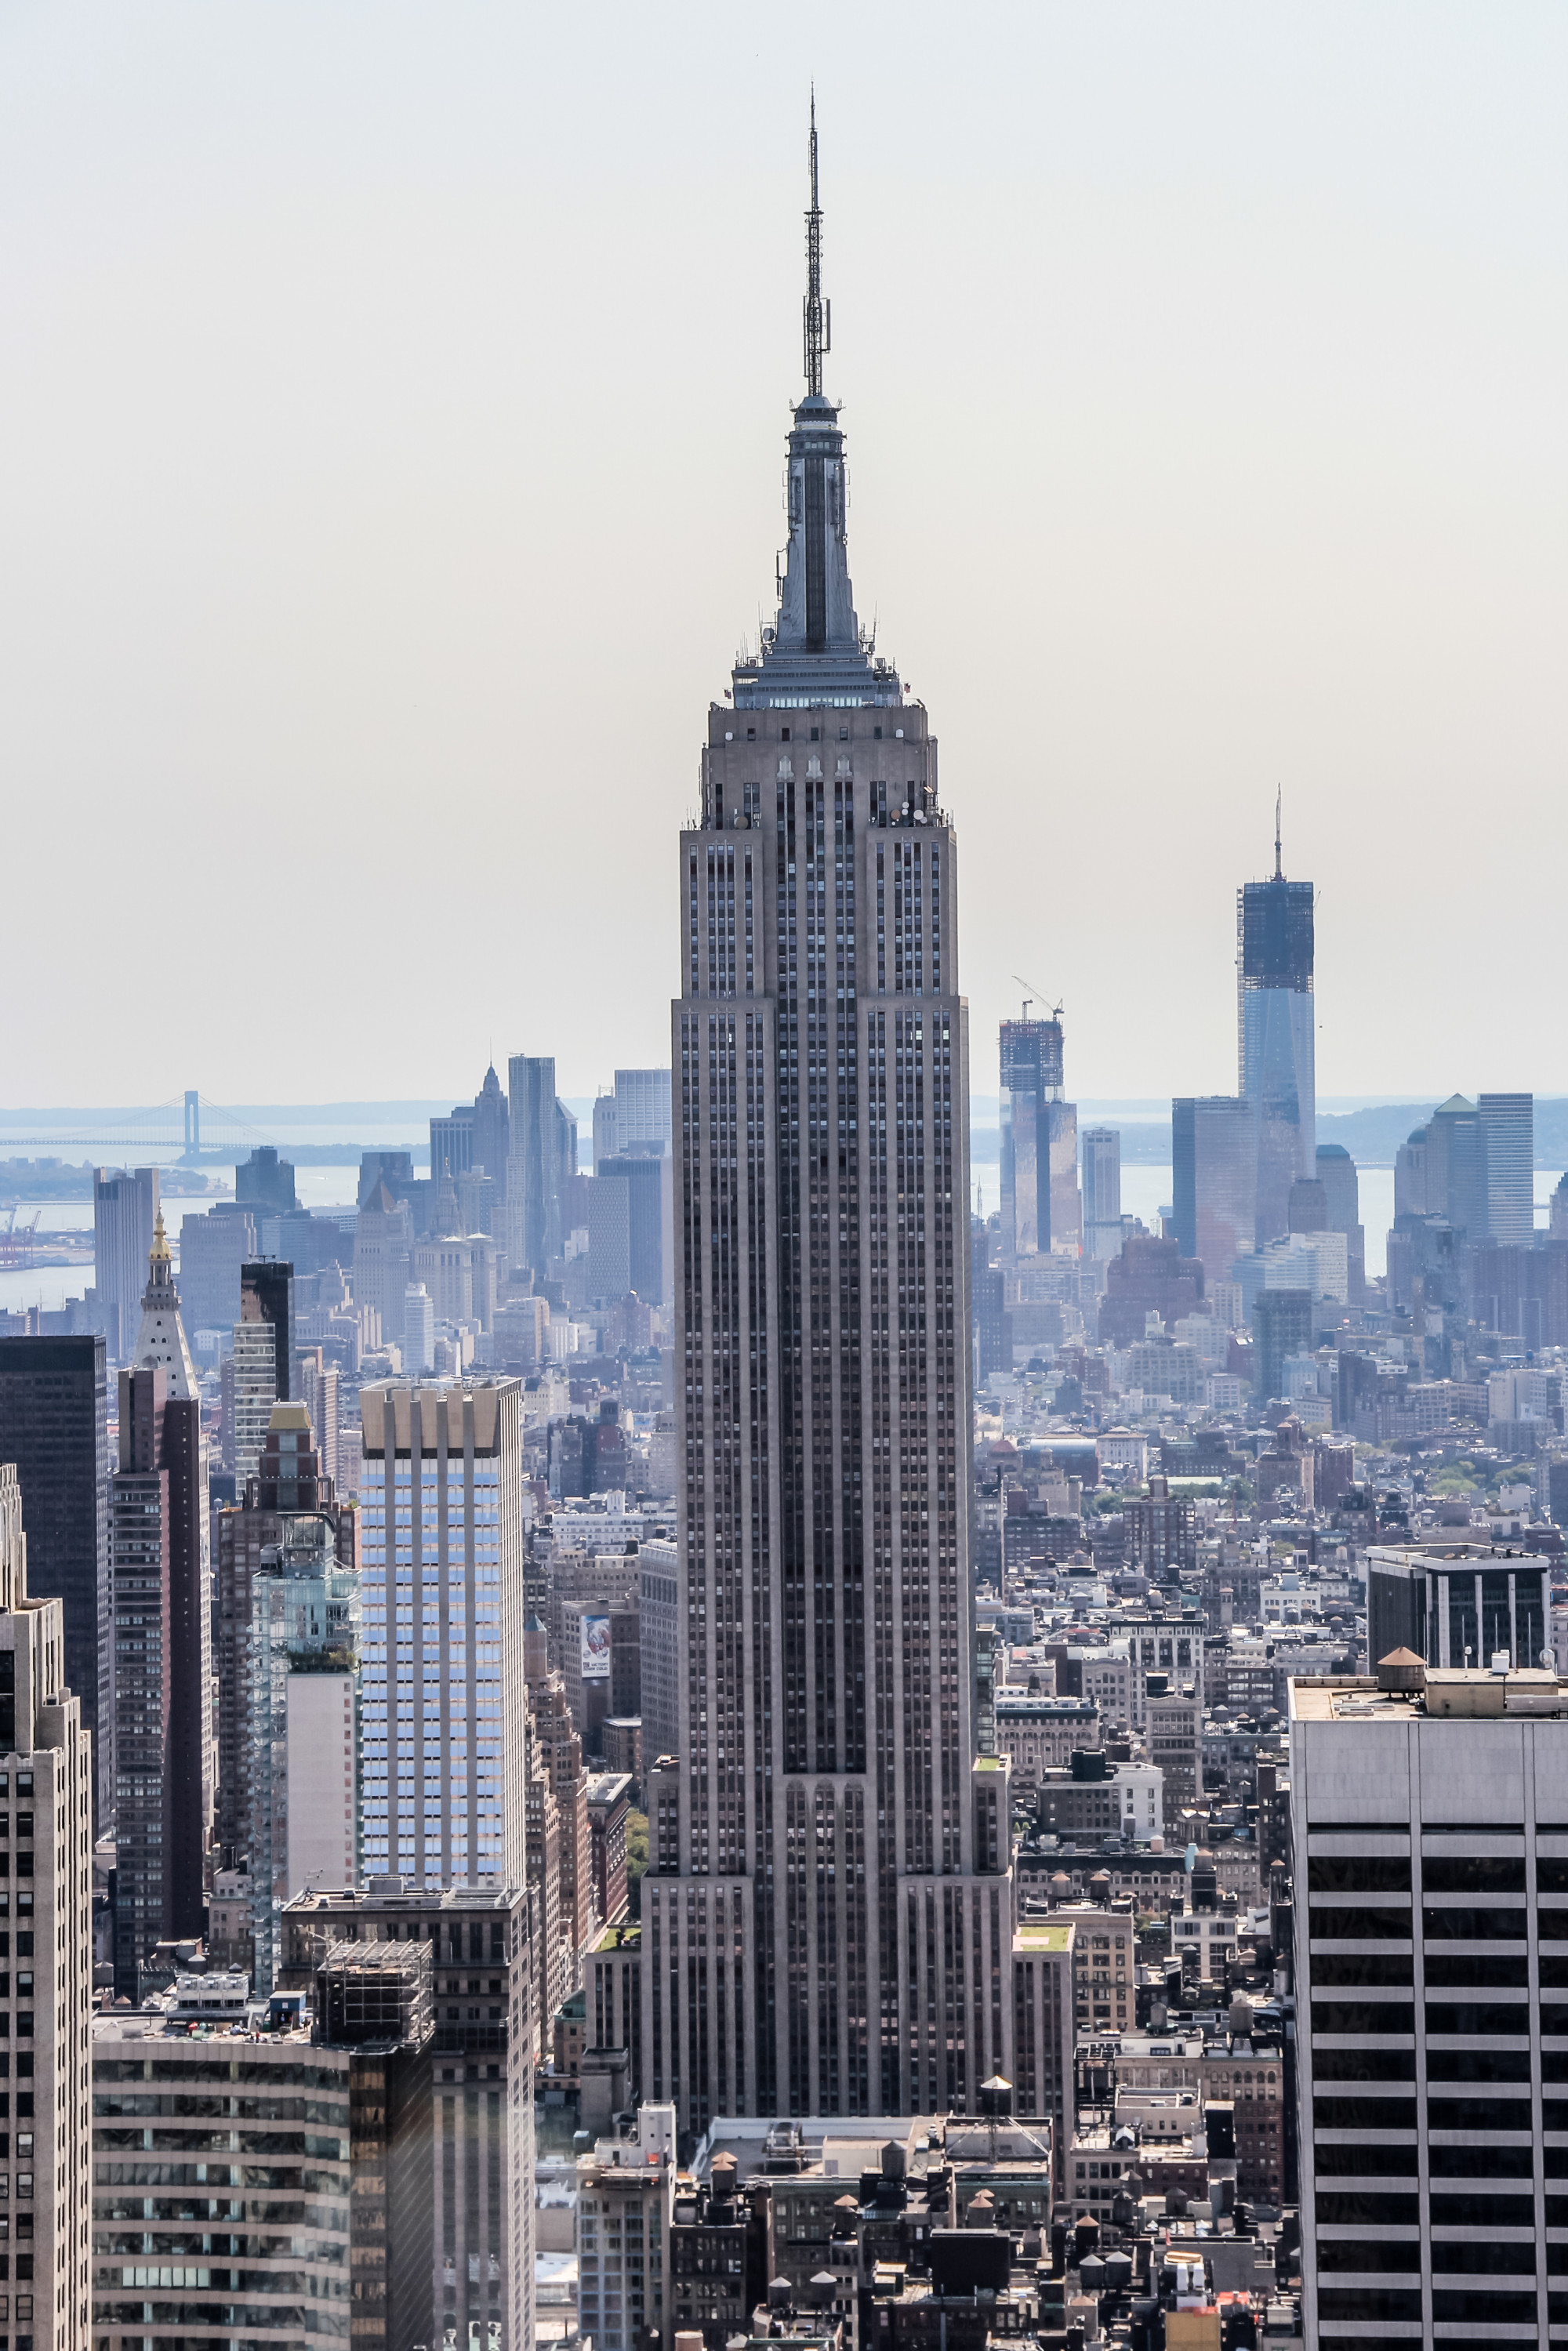 6 Things You Never Knew About the Empire State Building | The Huffington Post